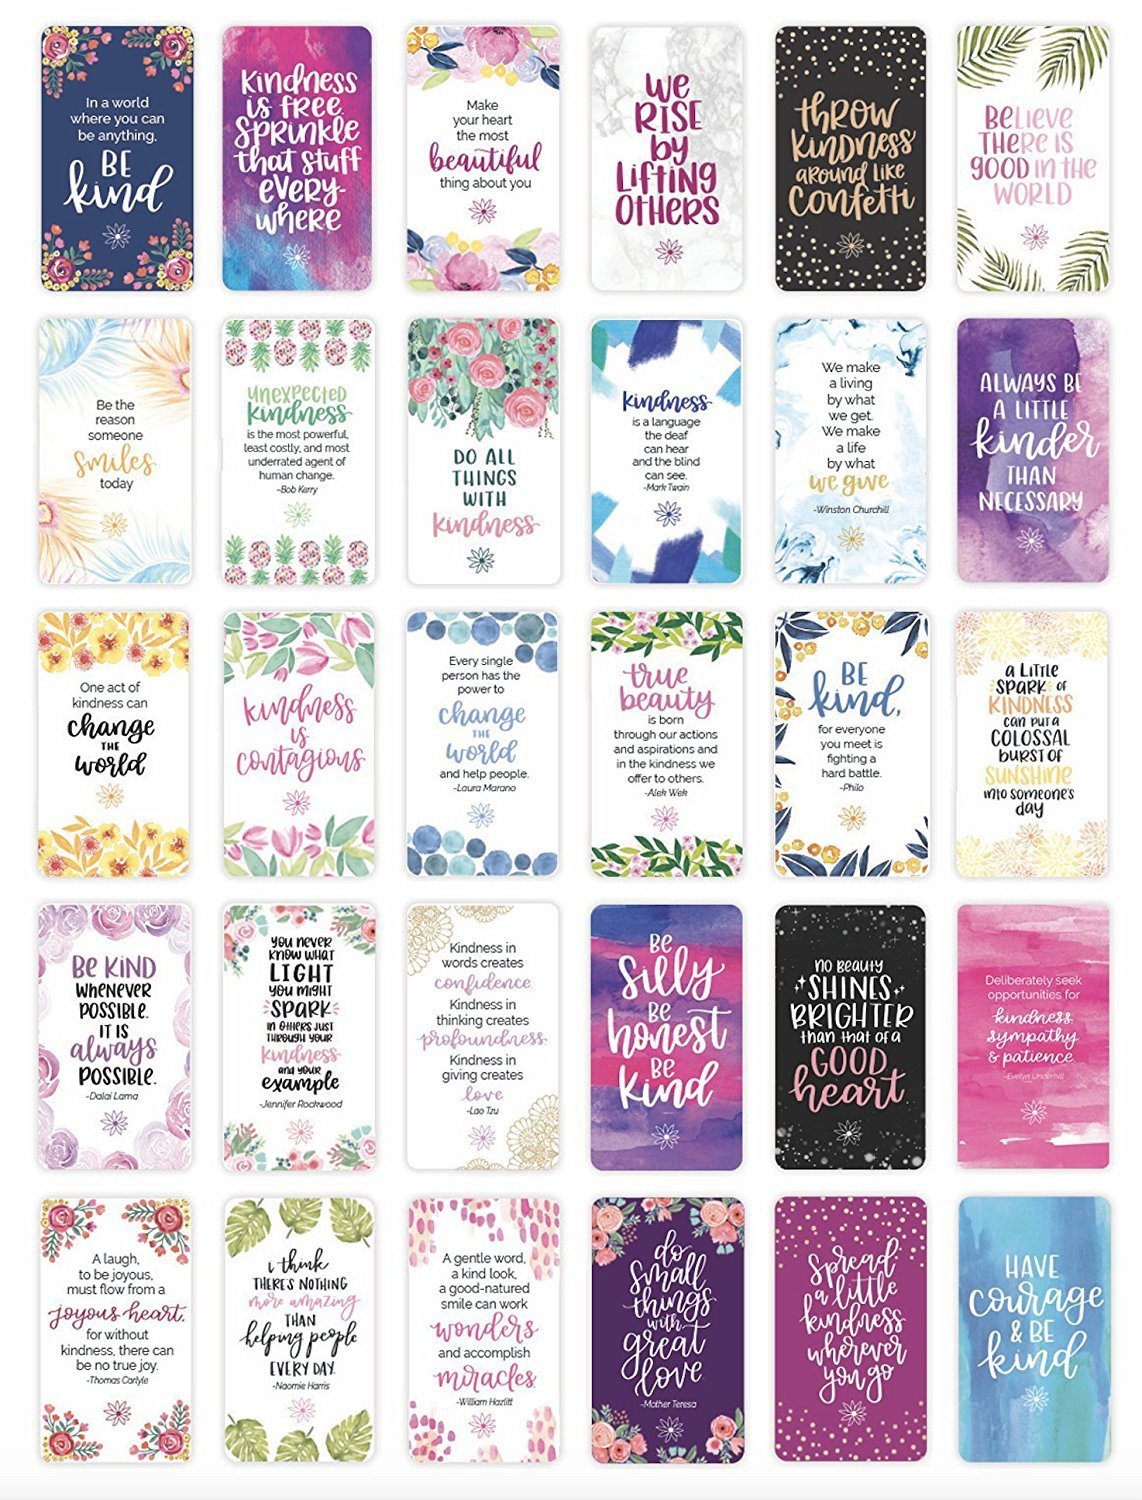 bloom daily planners Card Decks (Encouragement Cards)